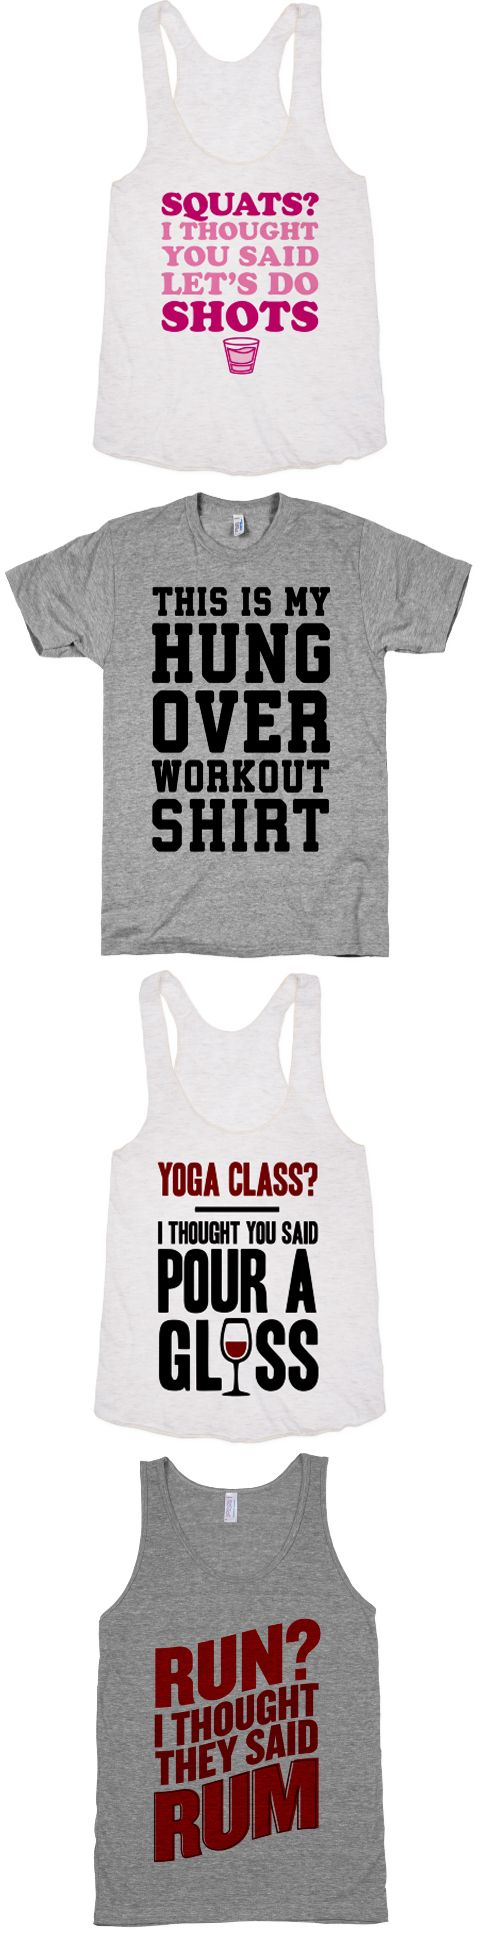 Gym fashion for the days when you would rather be drinking. If you work out to make room for your wine habit, we've got the shirt for you. Explore our whole collection of boozy tees and tanks at Activate Apparel.